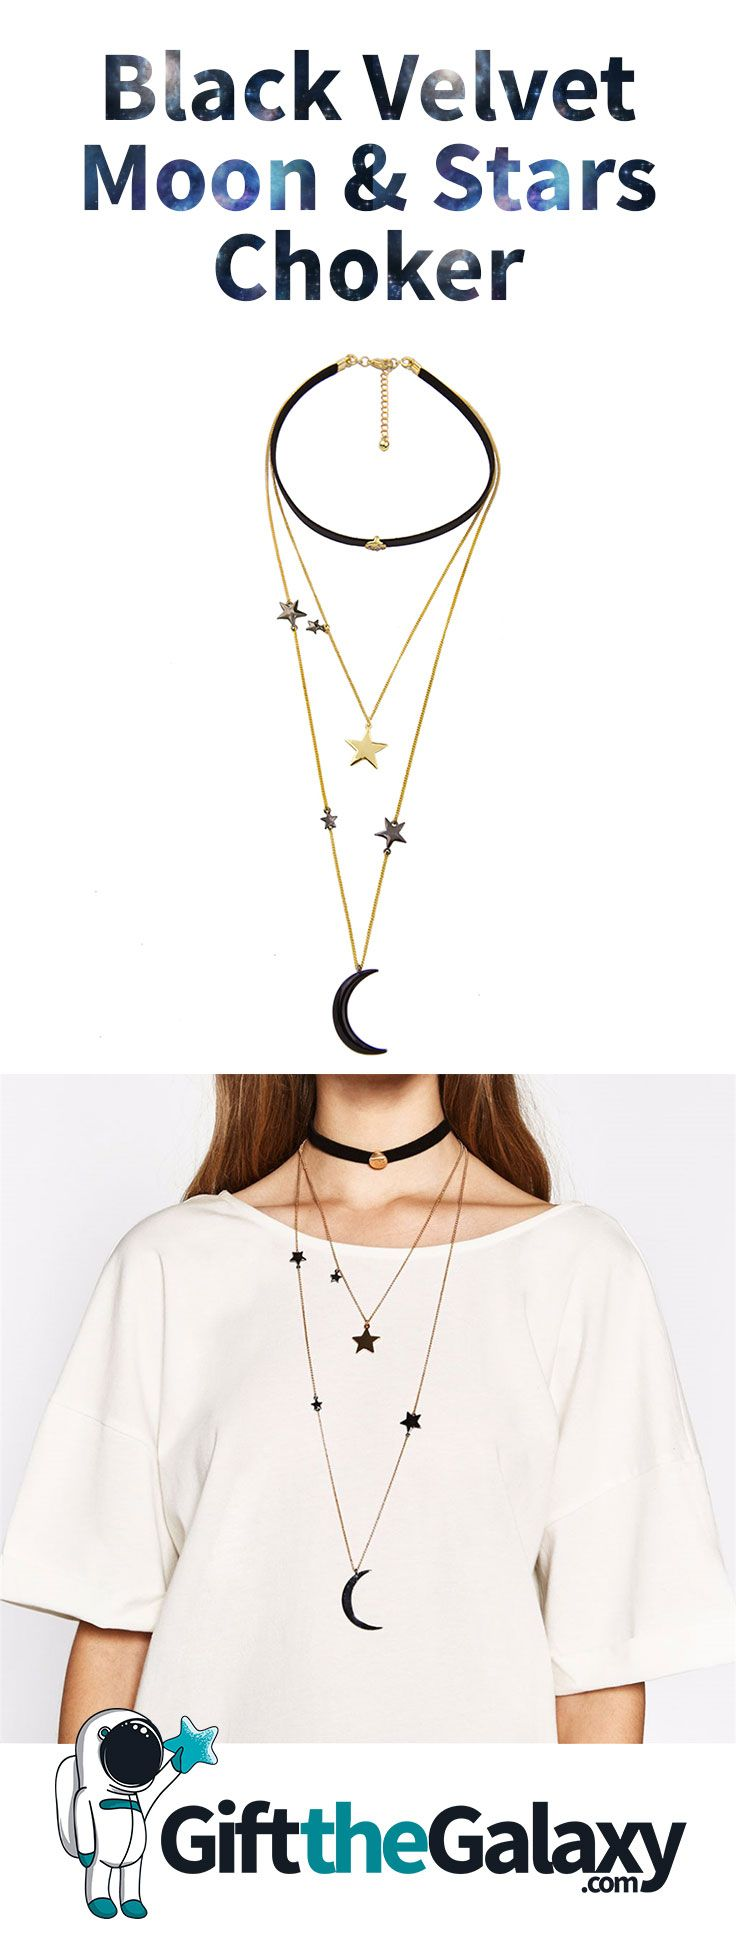 Women's Trendy Necklace Choker Long Length Moon Crescent Pendant Star Stars Kawaii Accessory Accessories Fashion Style Outfit Ideas Jewelry Collar Black Velvet Black Magic Goth Gothic Emo Goddess Chain Swag Gold Plated Tone Three Layer Layered Stacked >> Found on GiftTheGalaxy.com